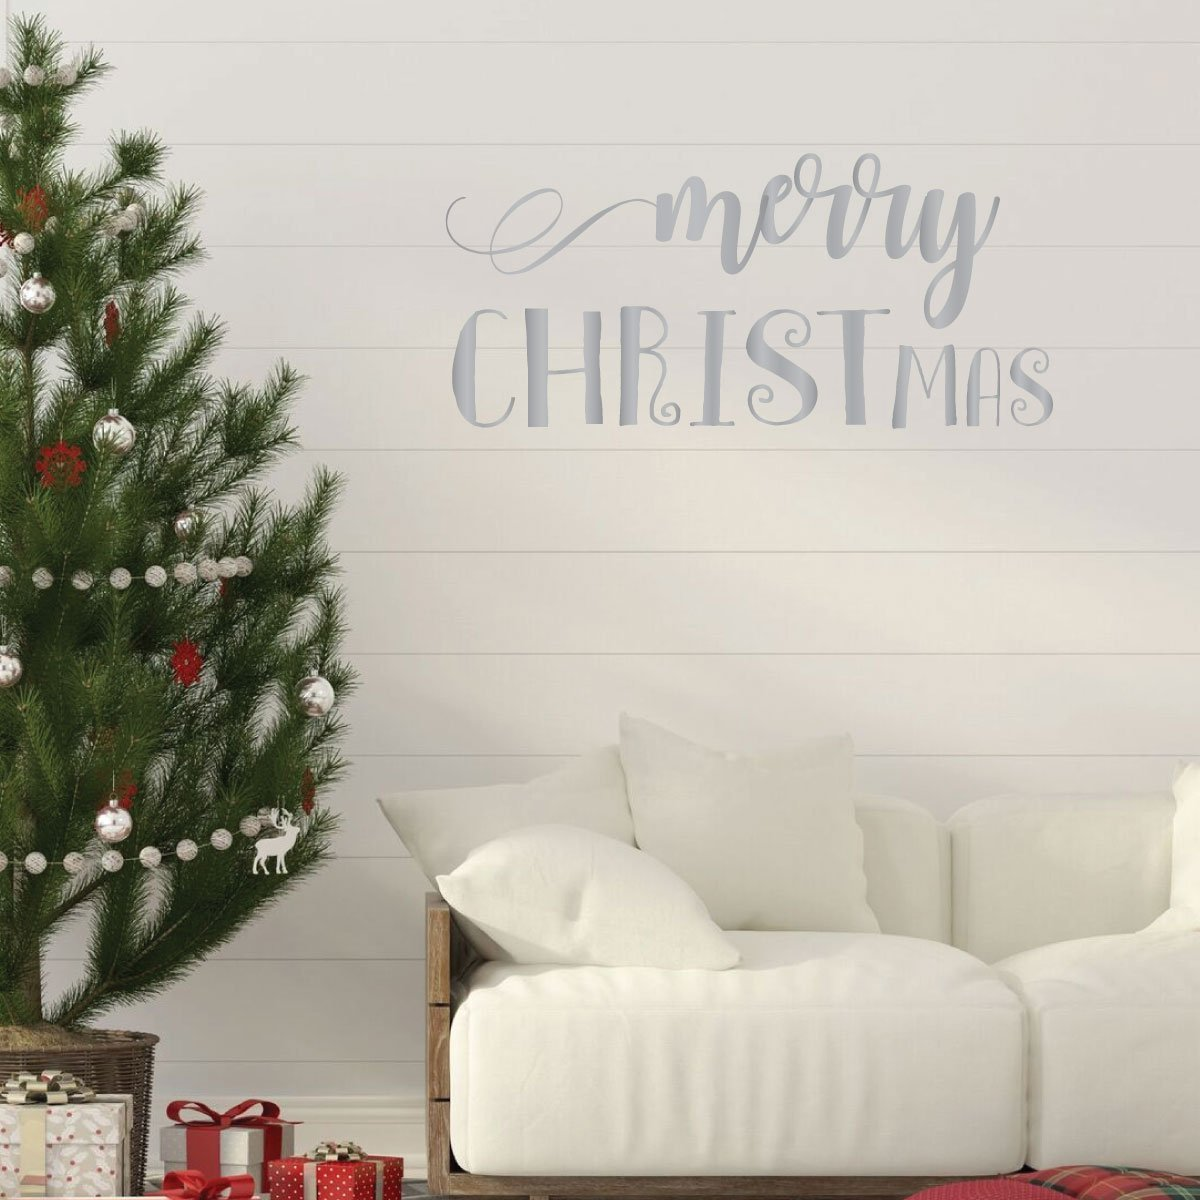 Religious Merry Christmas Images.Merry Christmas Jesus Religious Christian Vinyl Decor Wall Decal